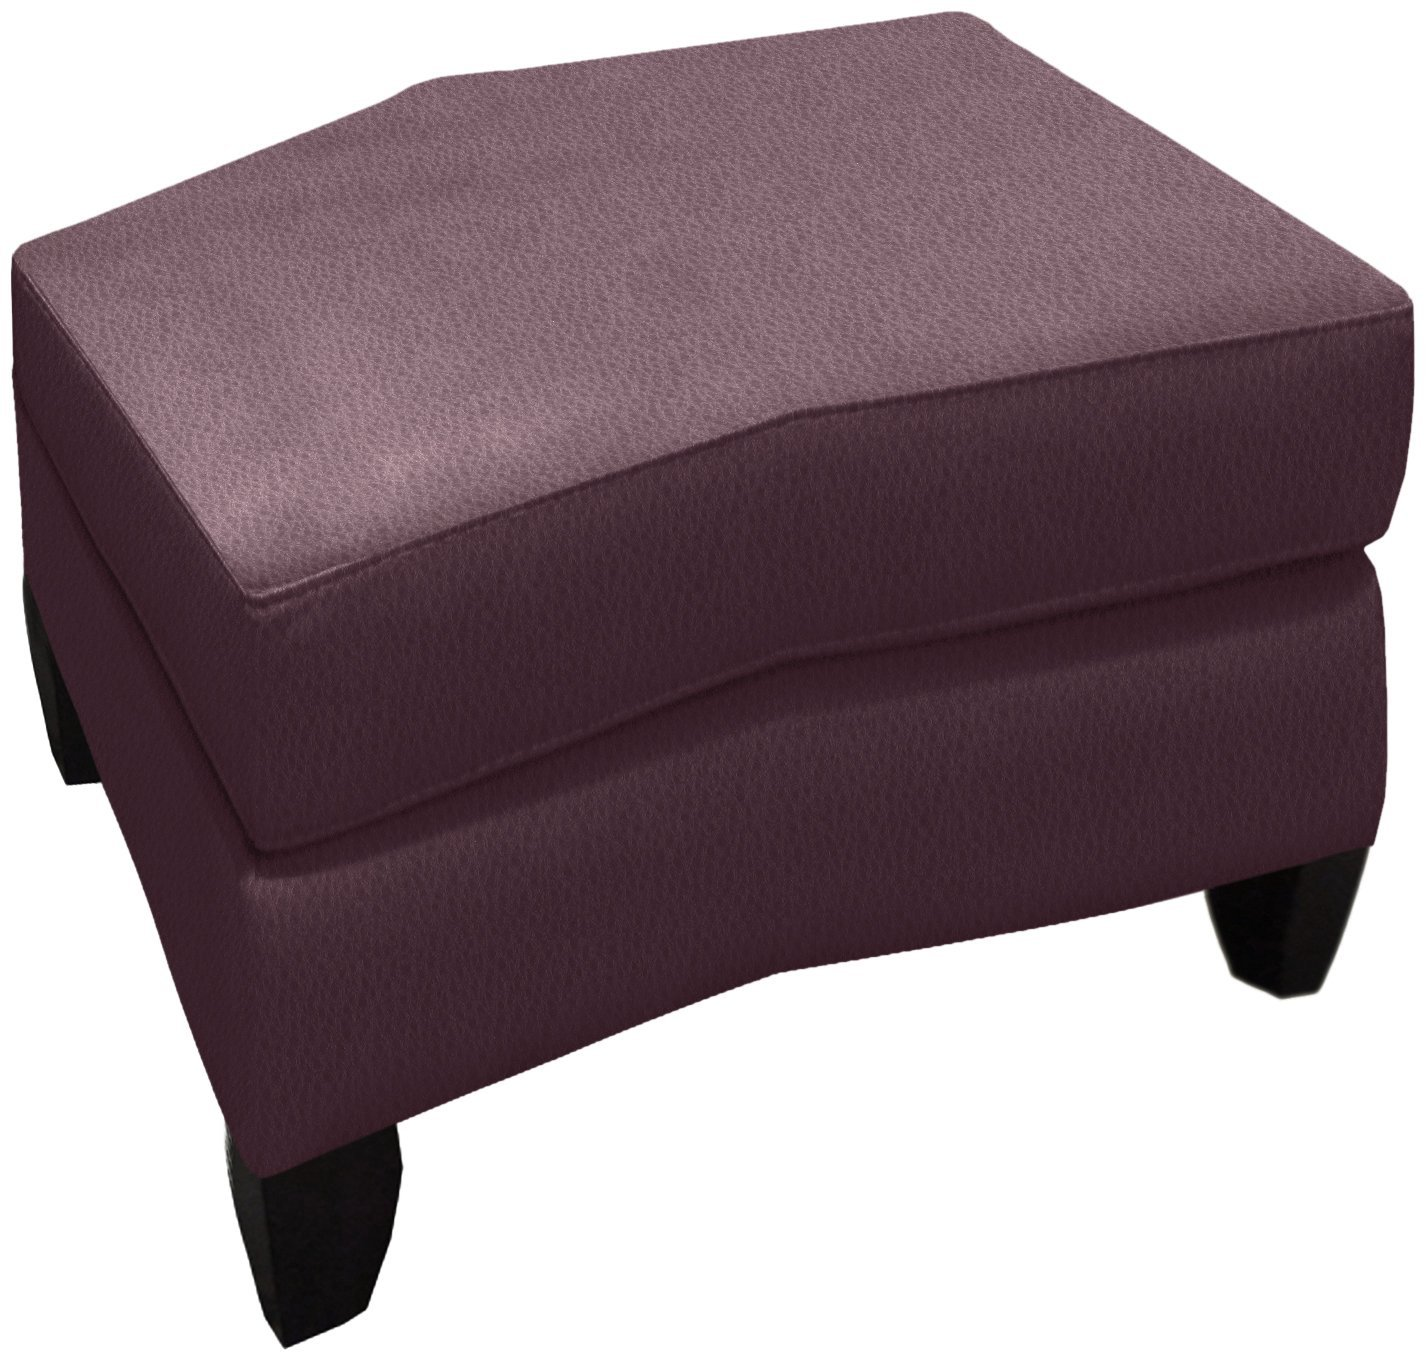 Omnia Leather Benjamin Storage Conversation Ottoman in Leather, Empire Butternut with no nailhead